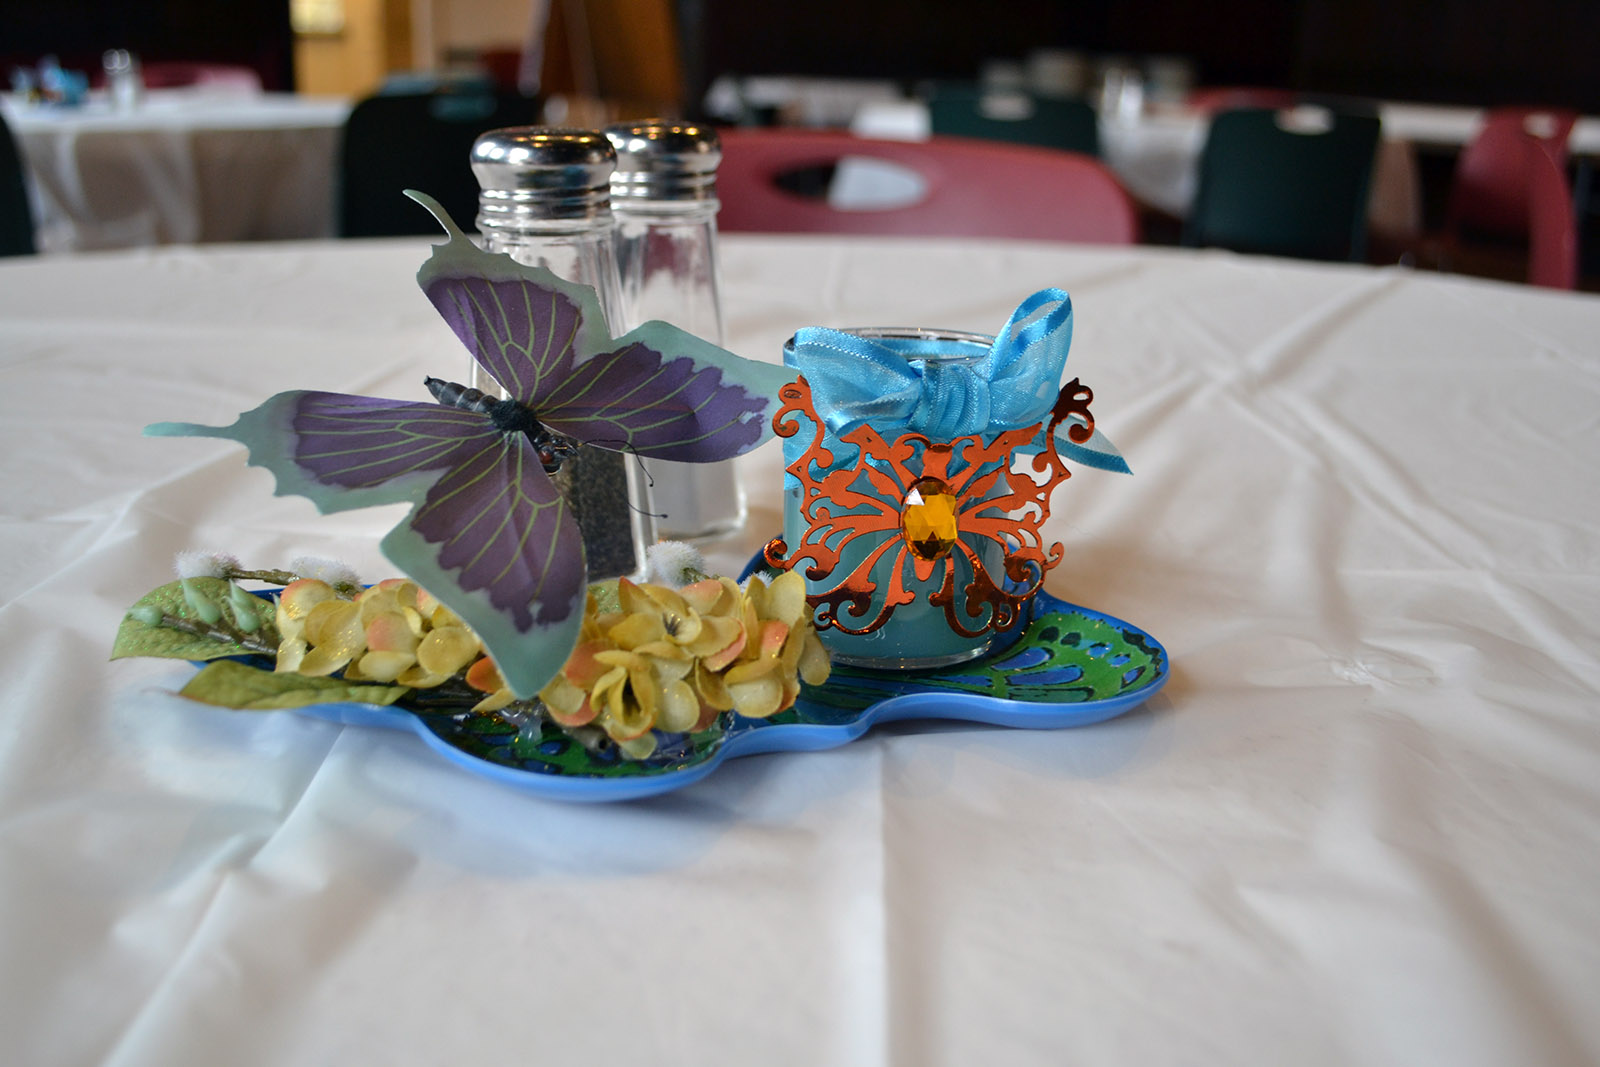 "Pat Foster modestly brushes off her centerpieces as just a hobby, but the creativity and level of detail she puts into ""prettying up"" each table throughout the season is amazing and truly appreciated!"